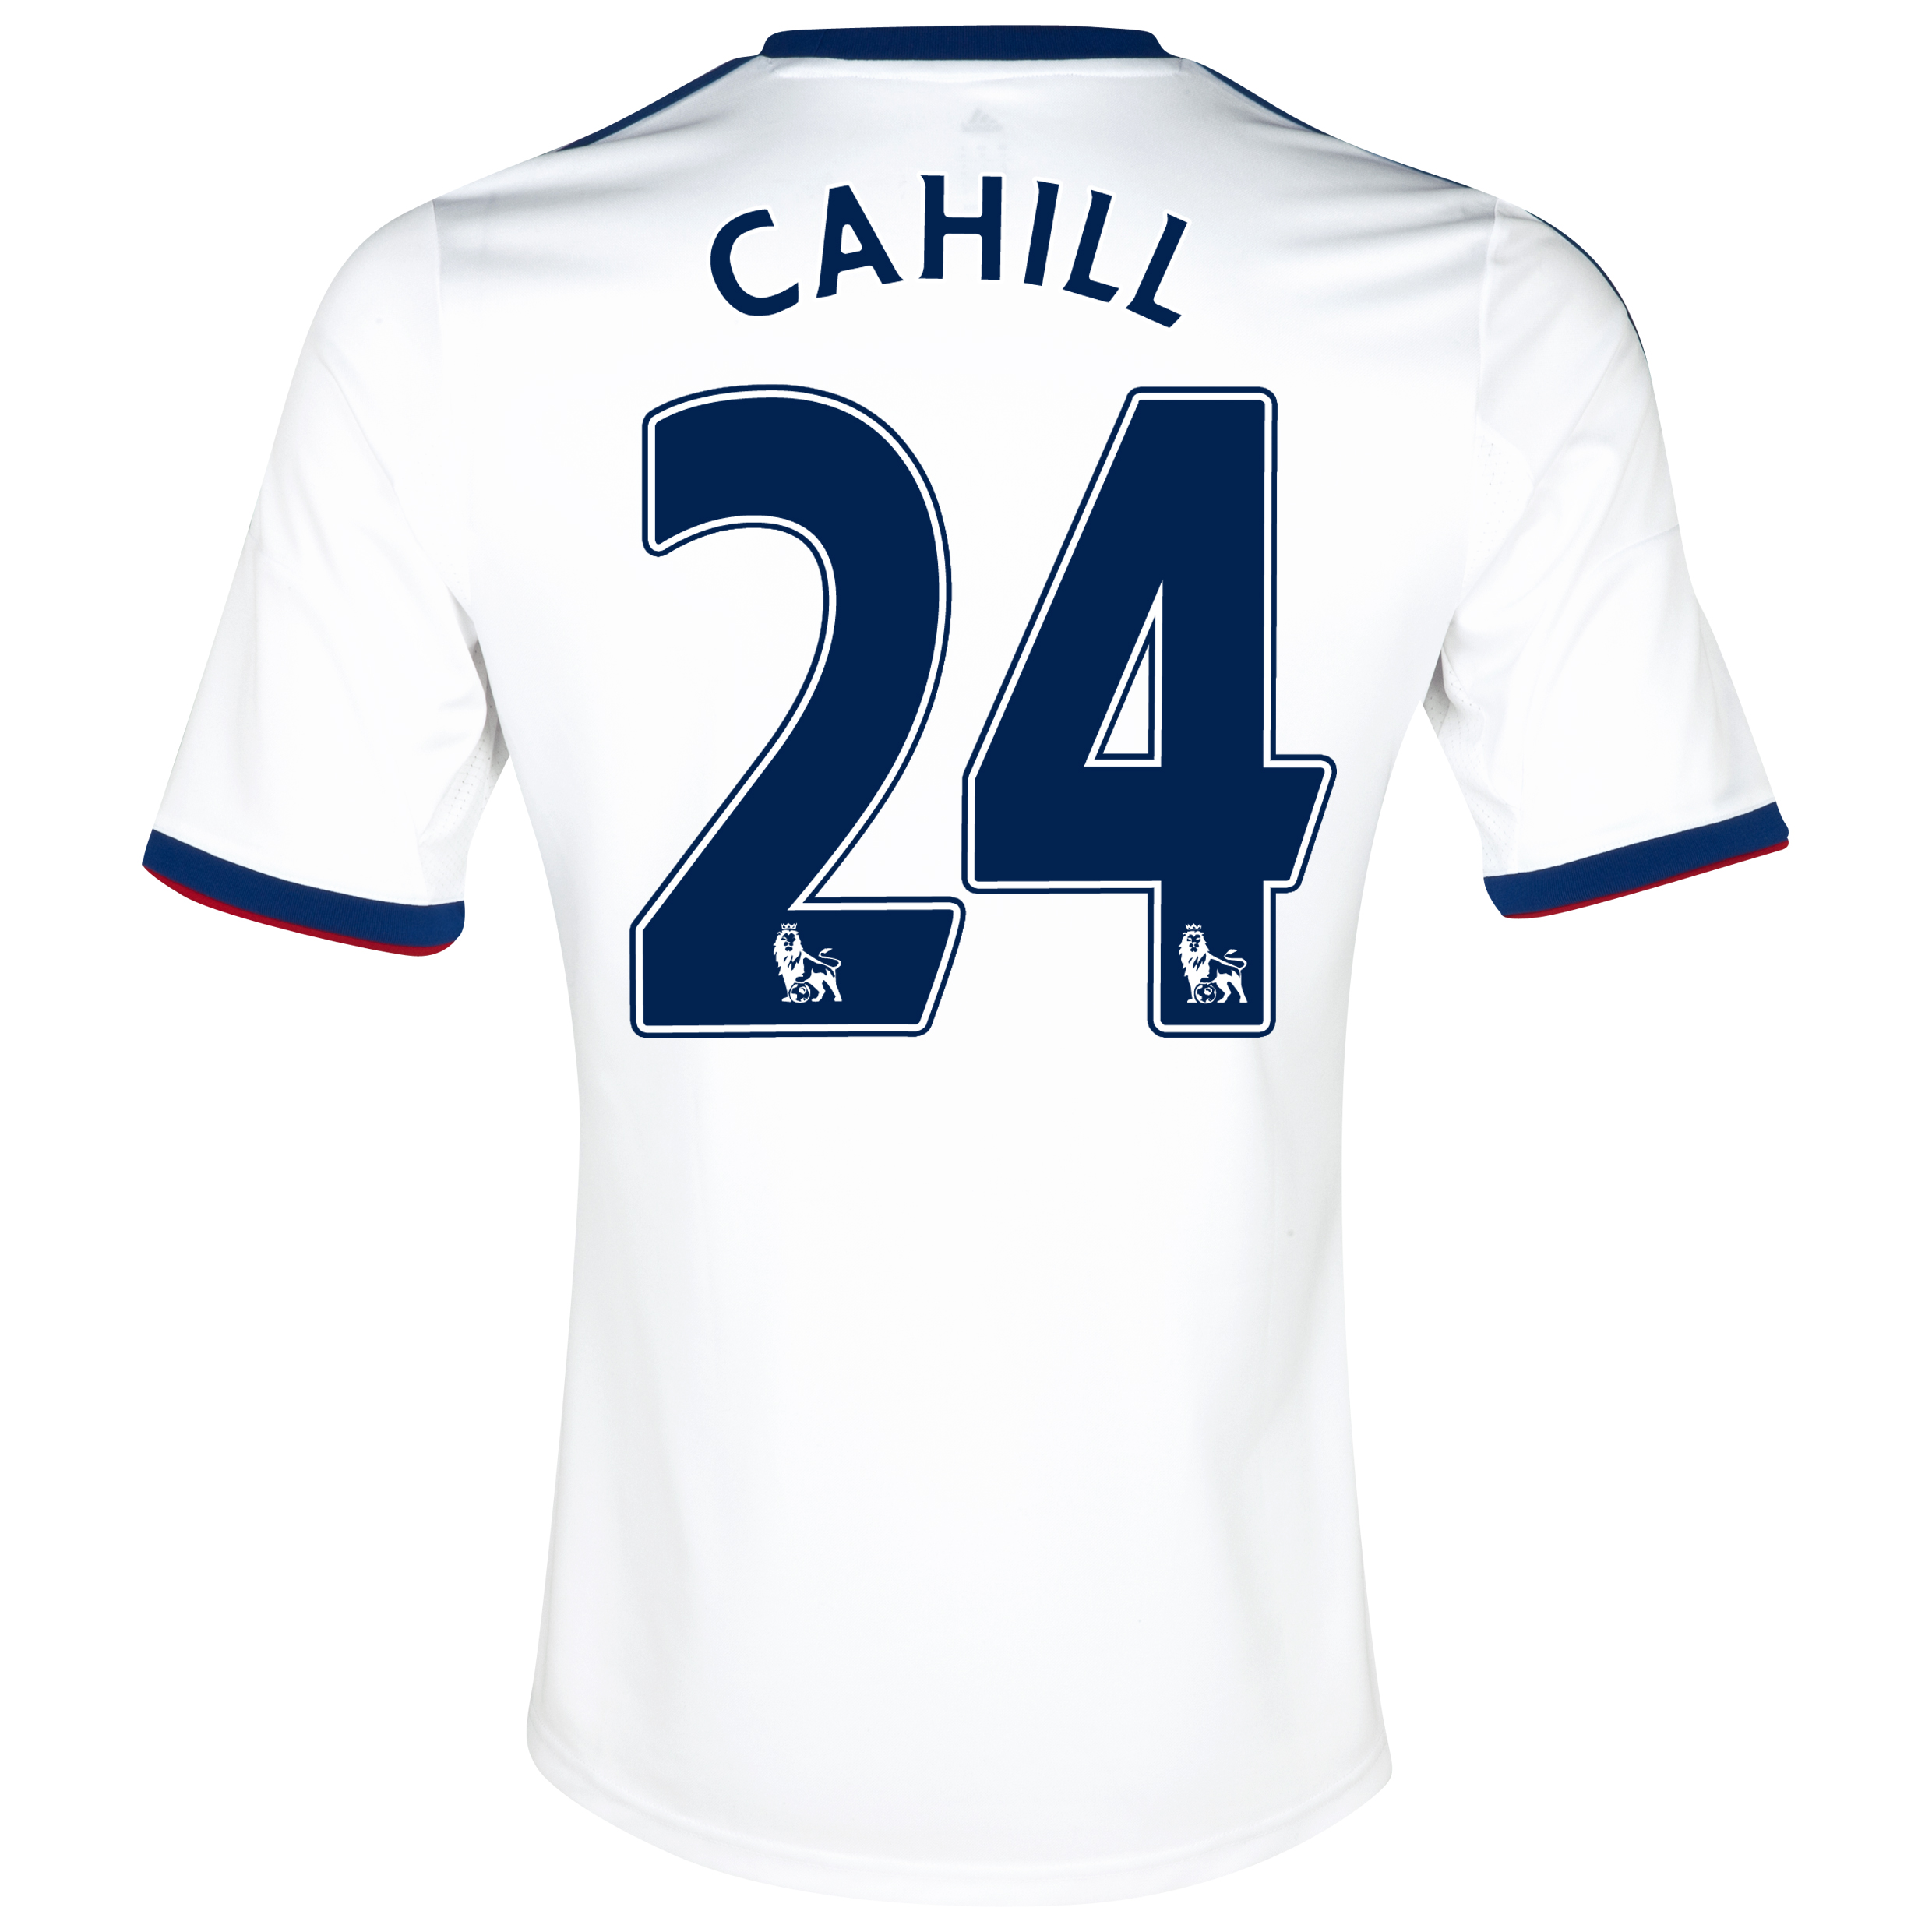 Chelsea Away Shirt 2013/14 with Cahill 24 printing